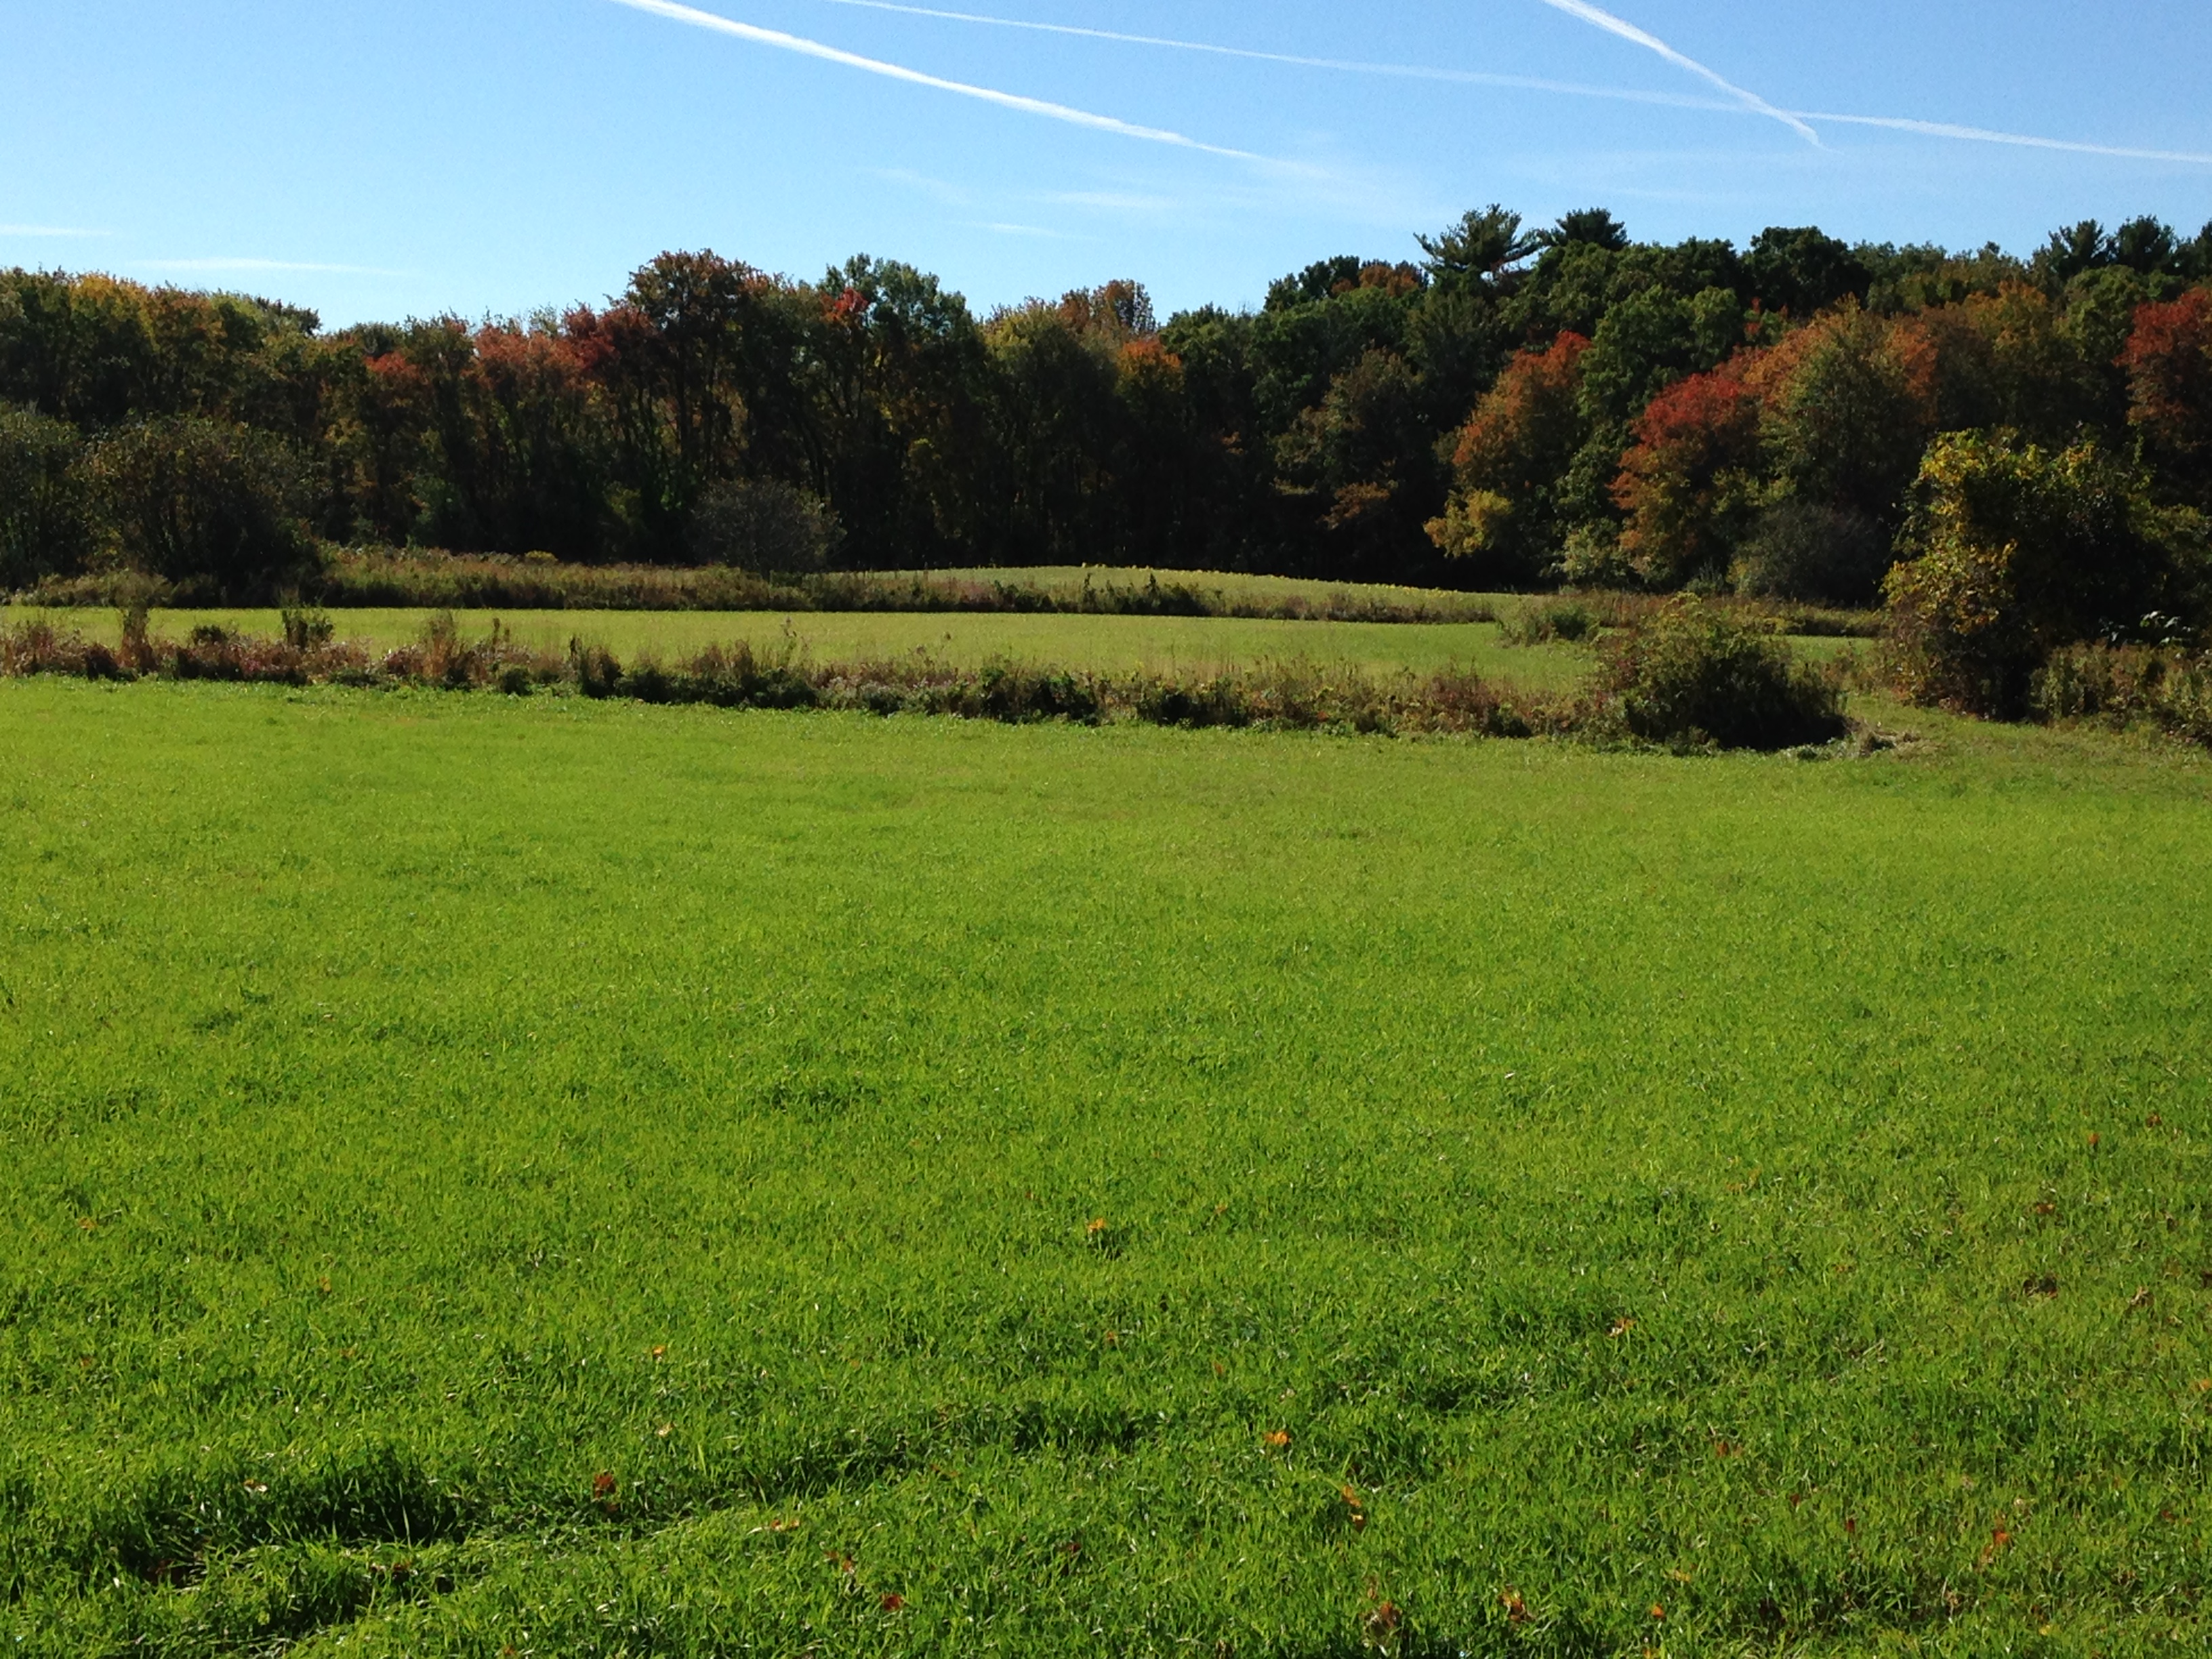 Thanks To Funding From The Merrimack Conservation Partnership, 120 Acres Of Land Were Protected By Essex County Greenbelt On The Leonhard-Eldred Farm In Boxford And North Andover.